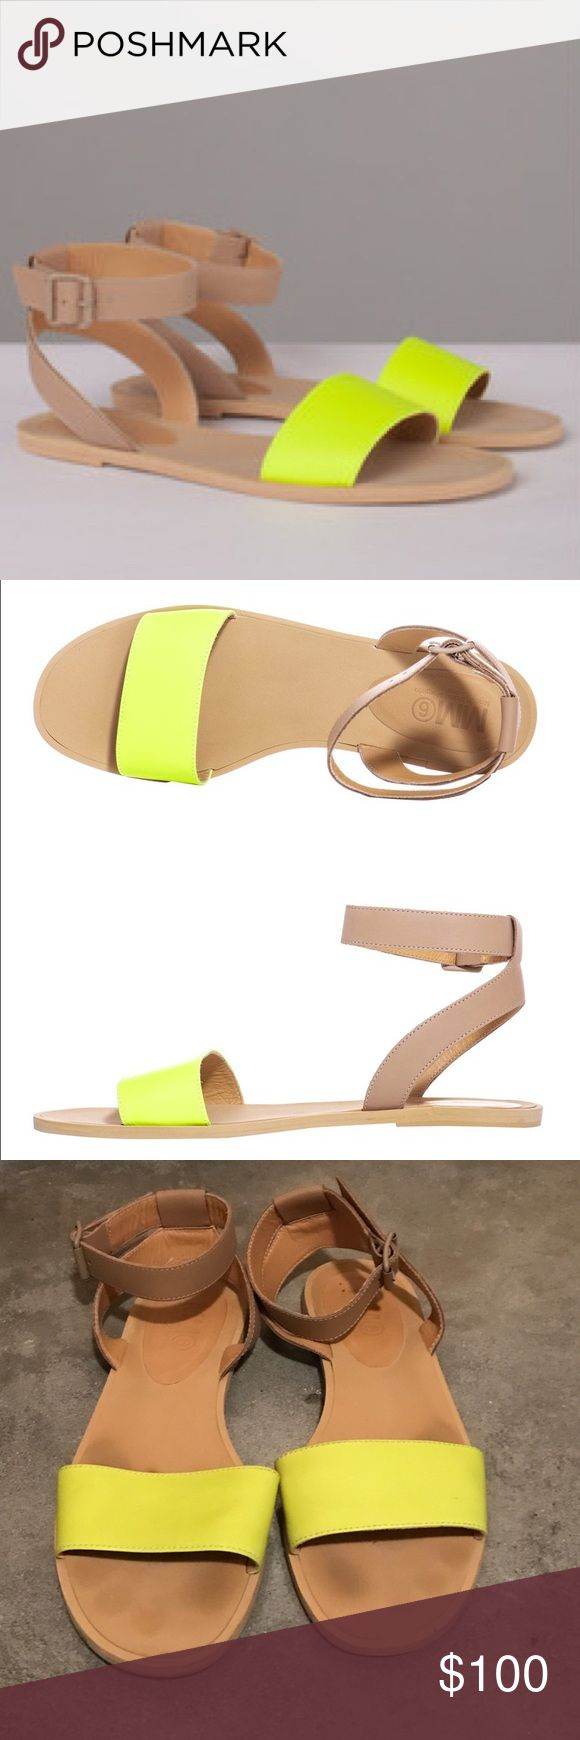 MM6 Martin Margiela Neon Sandals Worn a few times but have been sitting in my closet for the most part. Lots of life left in these babies! Maison Martin Margiela Shoes Sandals